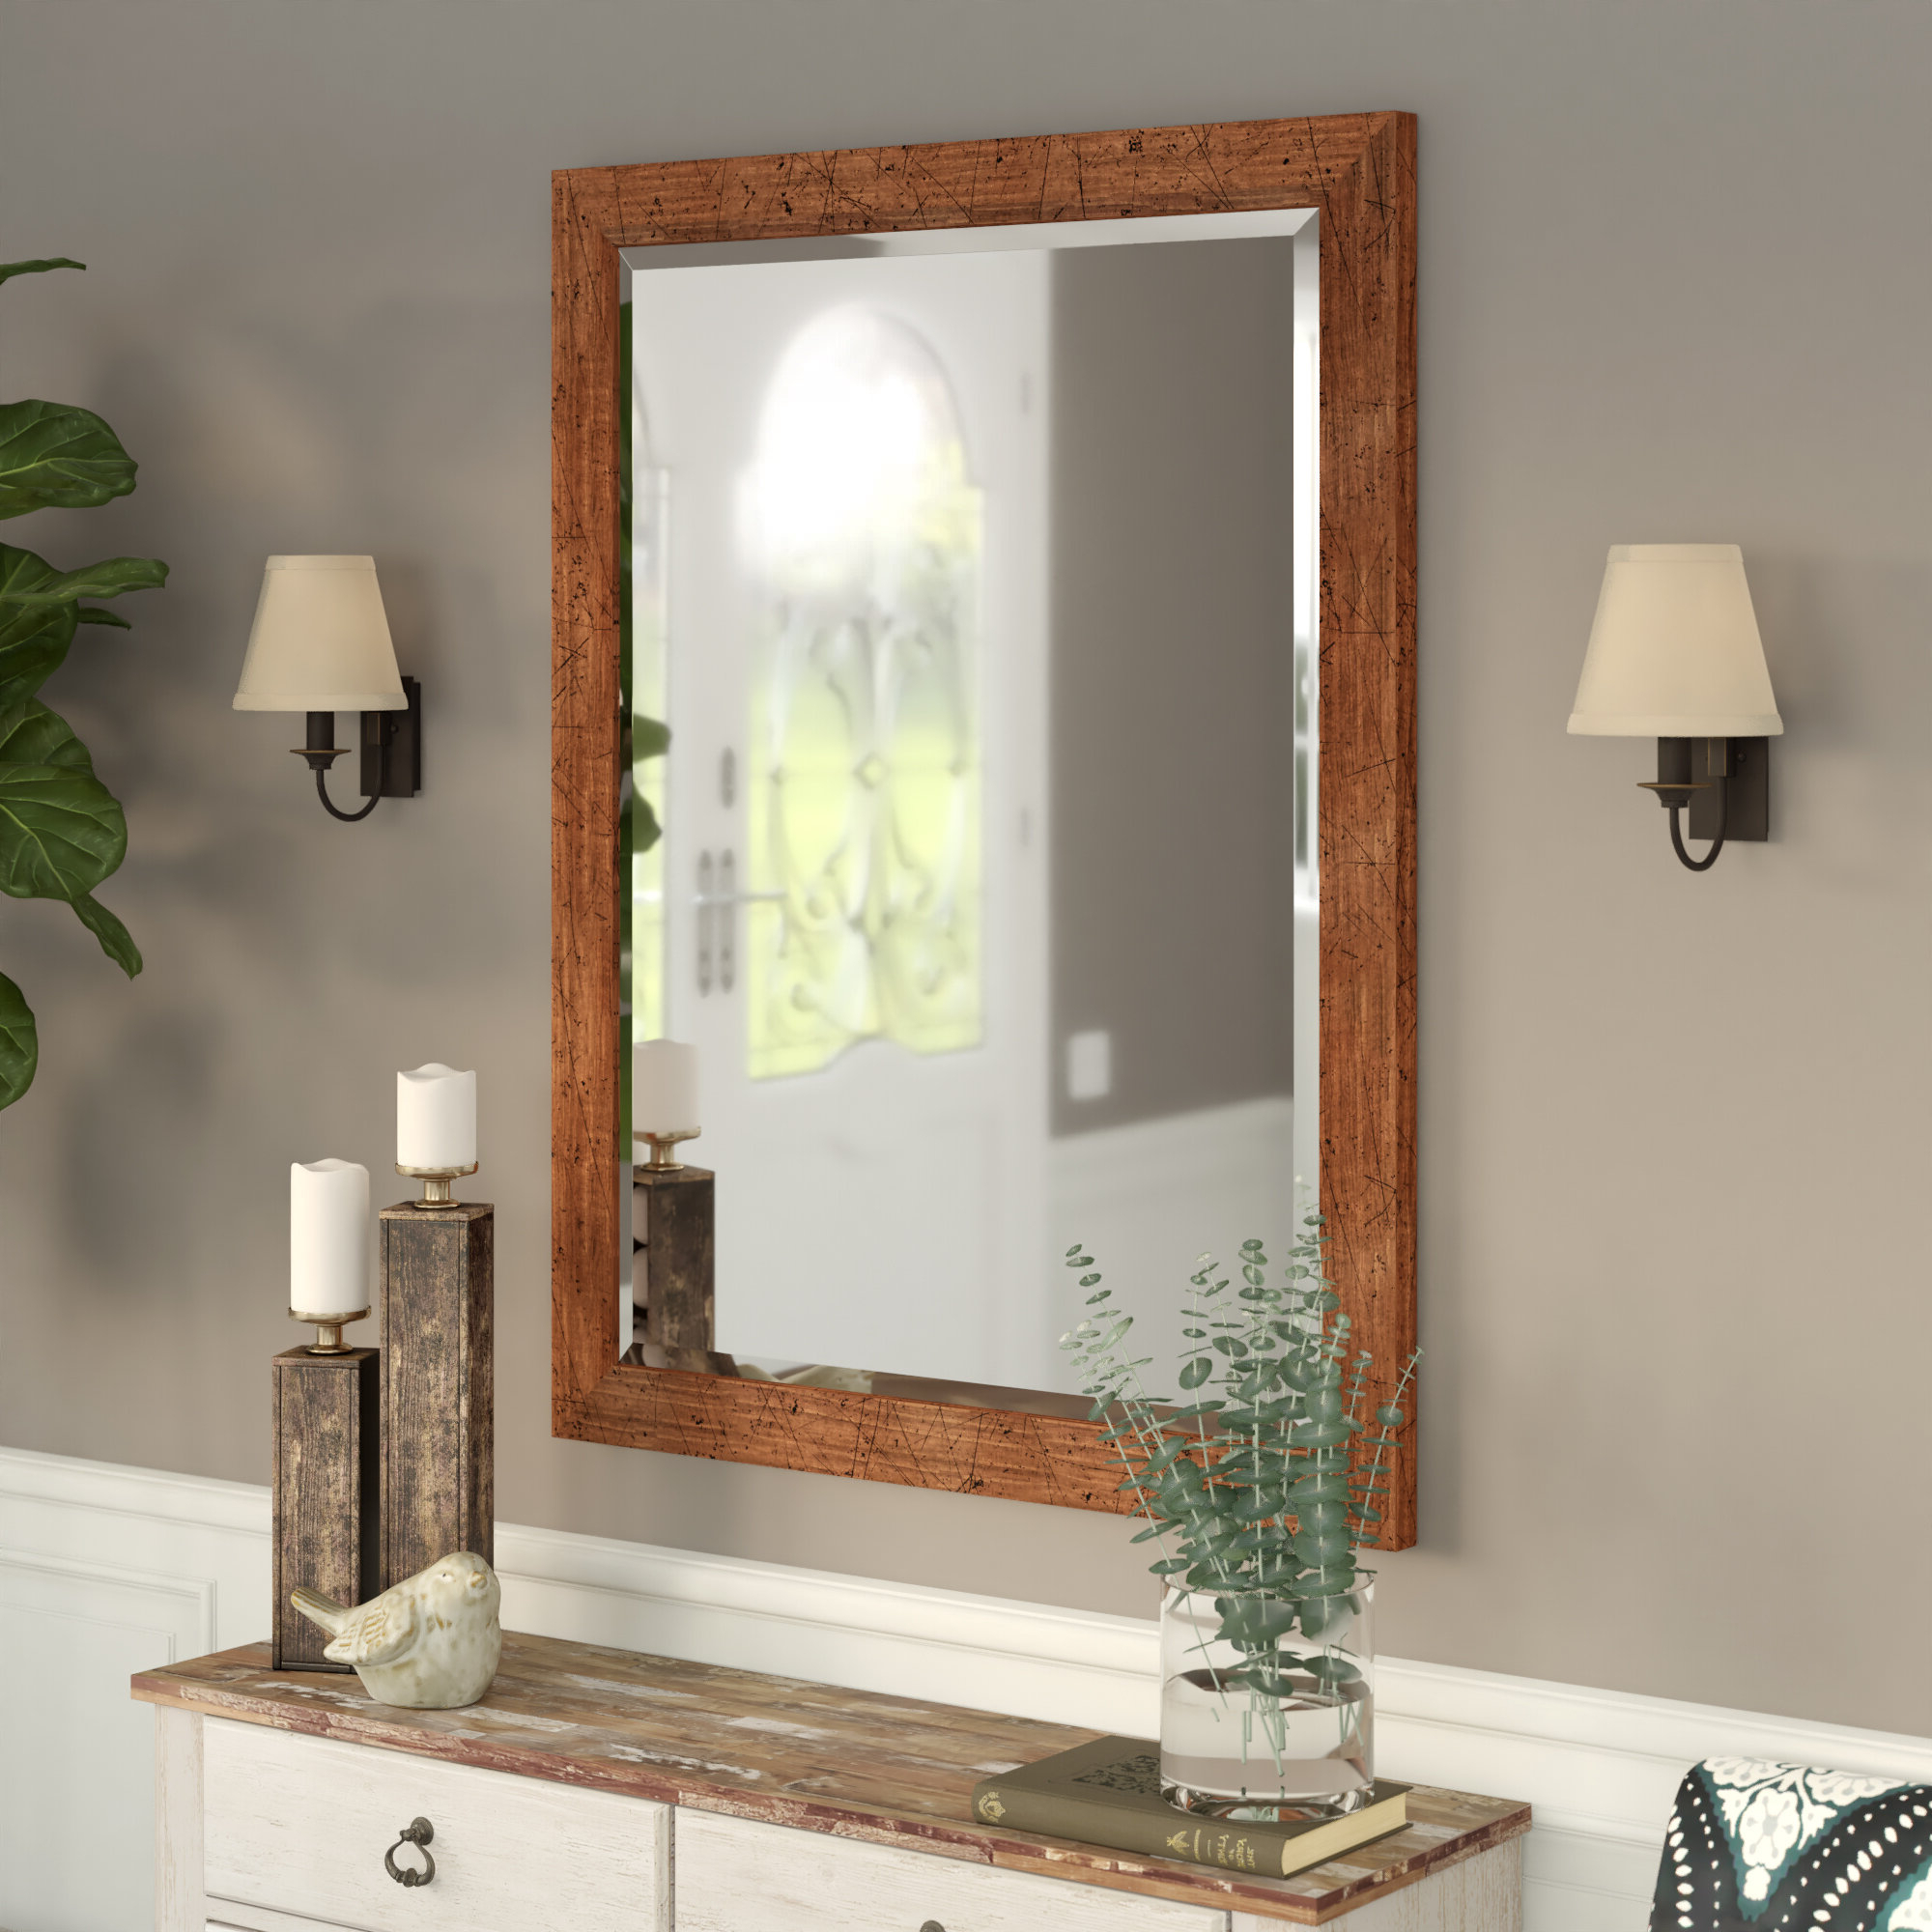 Bentley Modern & Contemporary Wall Mirror Intended For 2019 Modern Wall Mirrors (View 20 of 20)